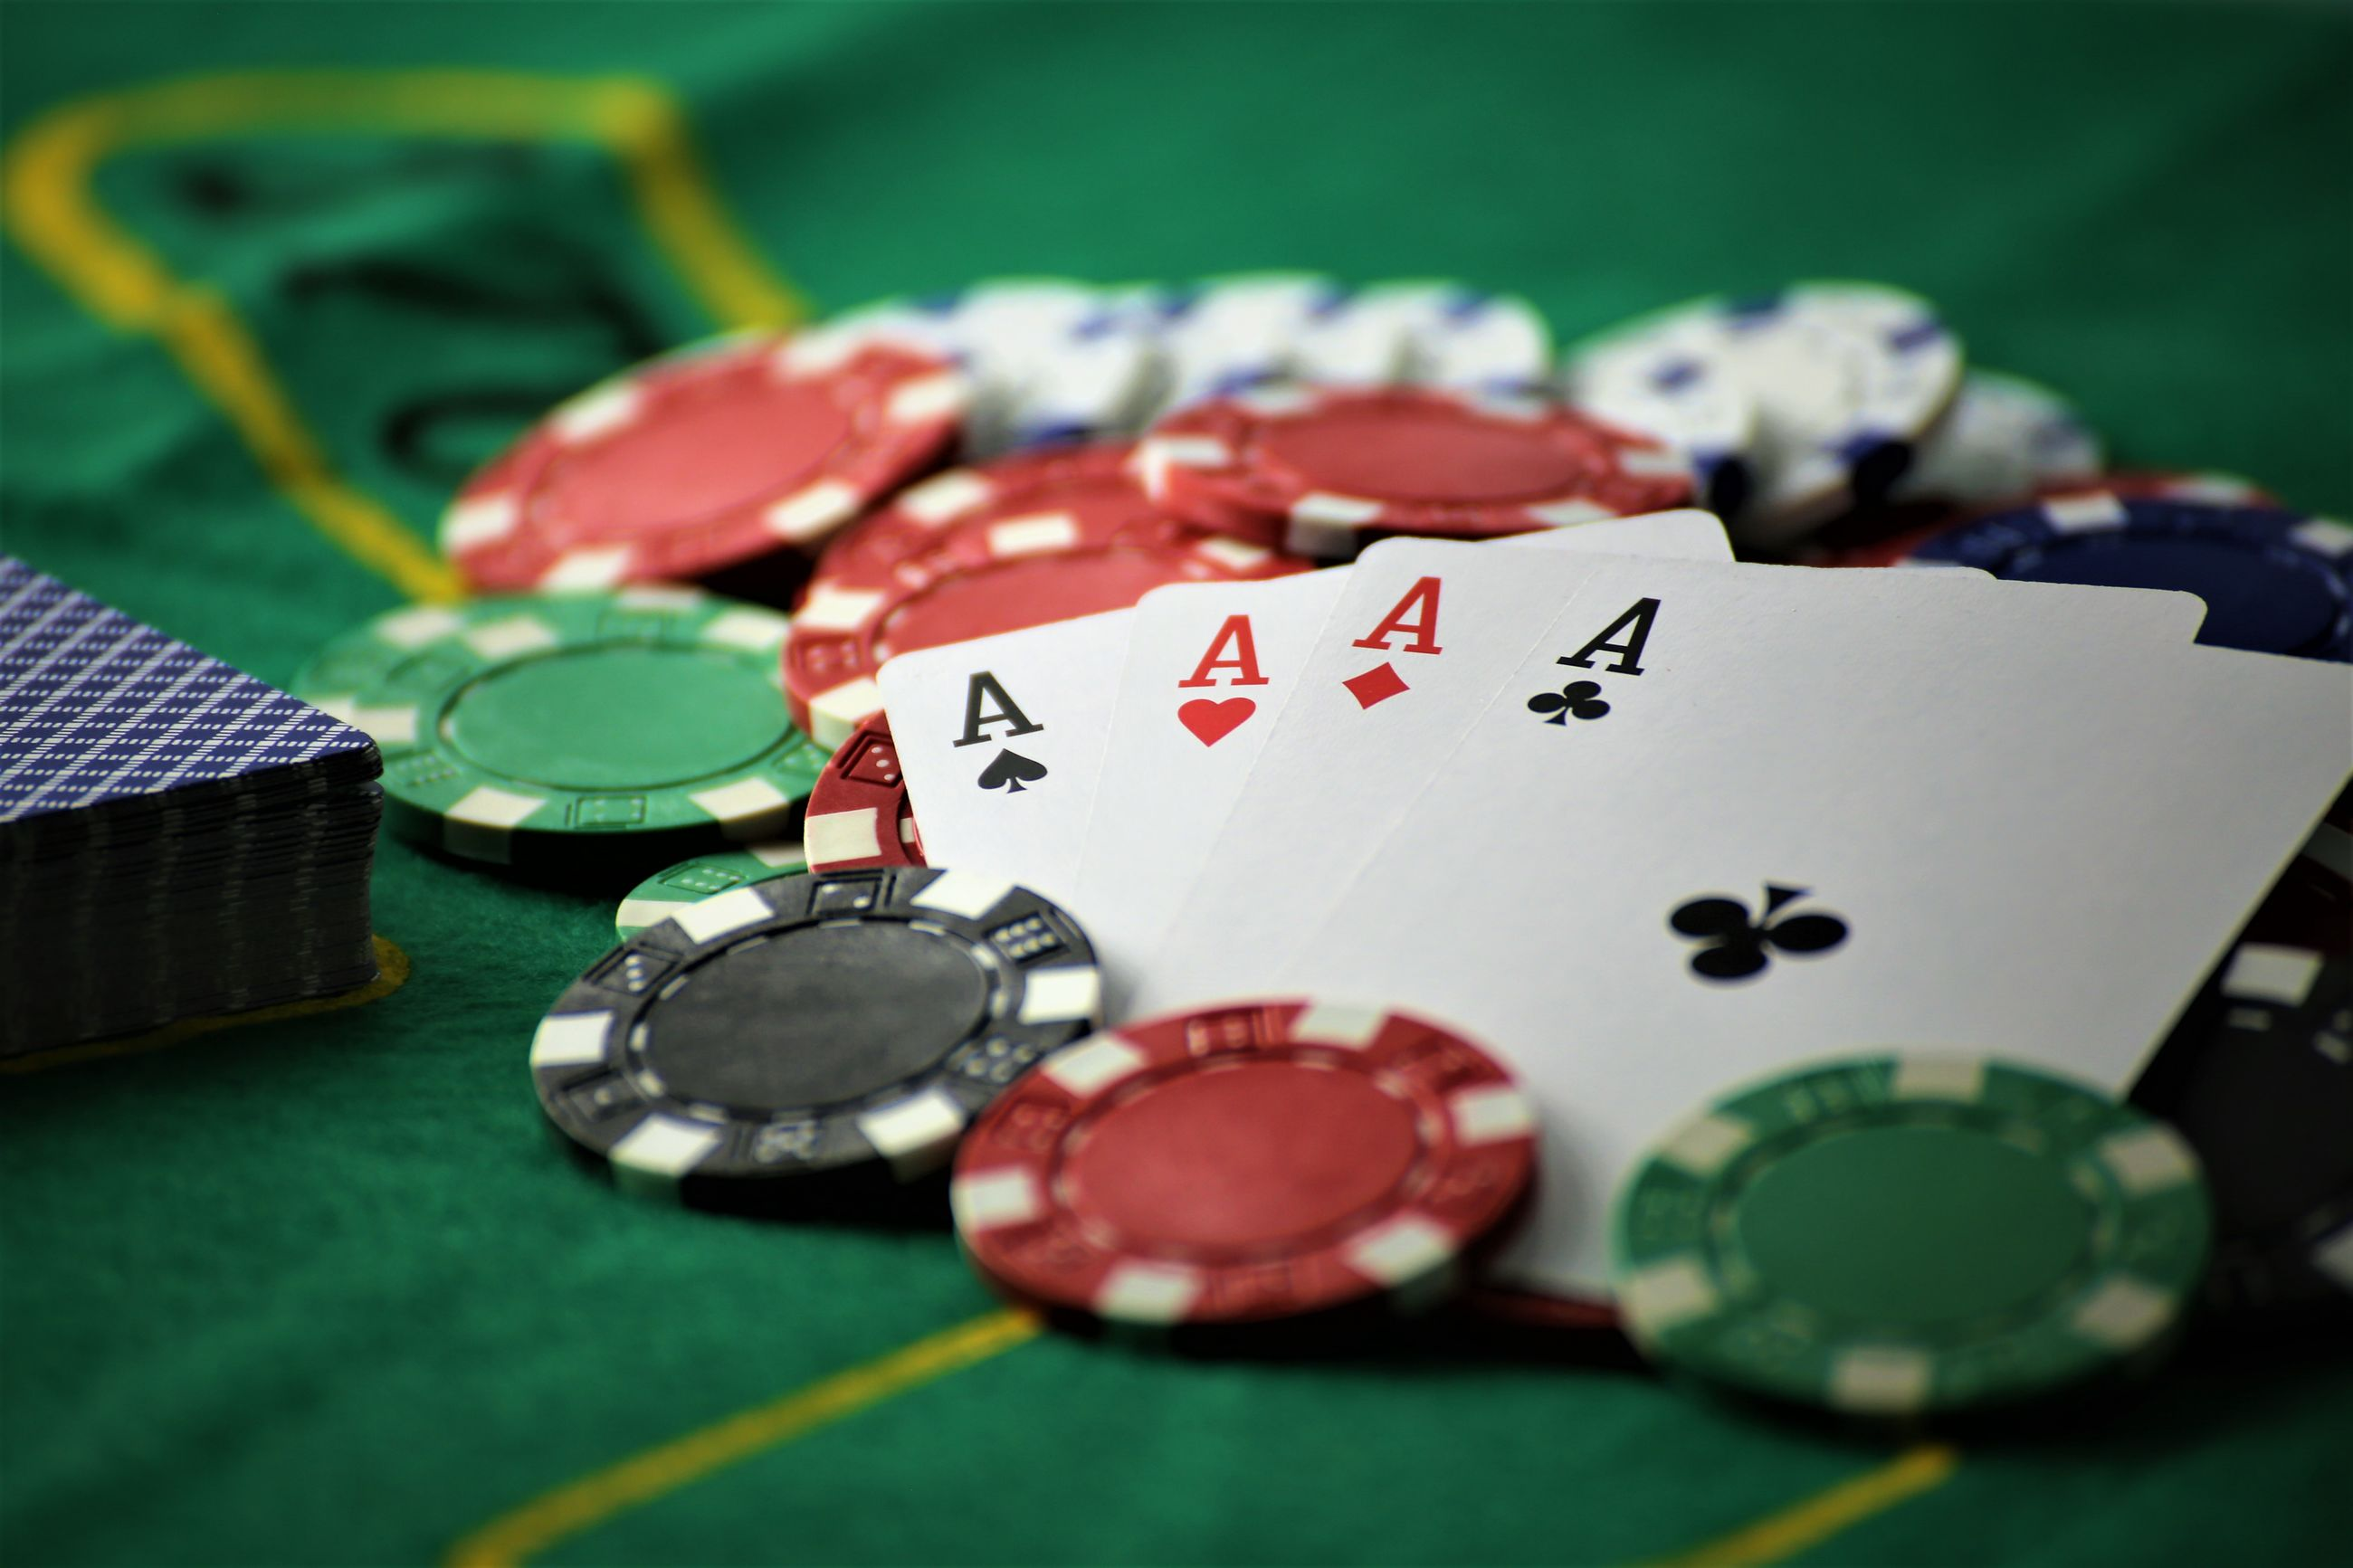 Close-up of playing cards and gambling chips on table